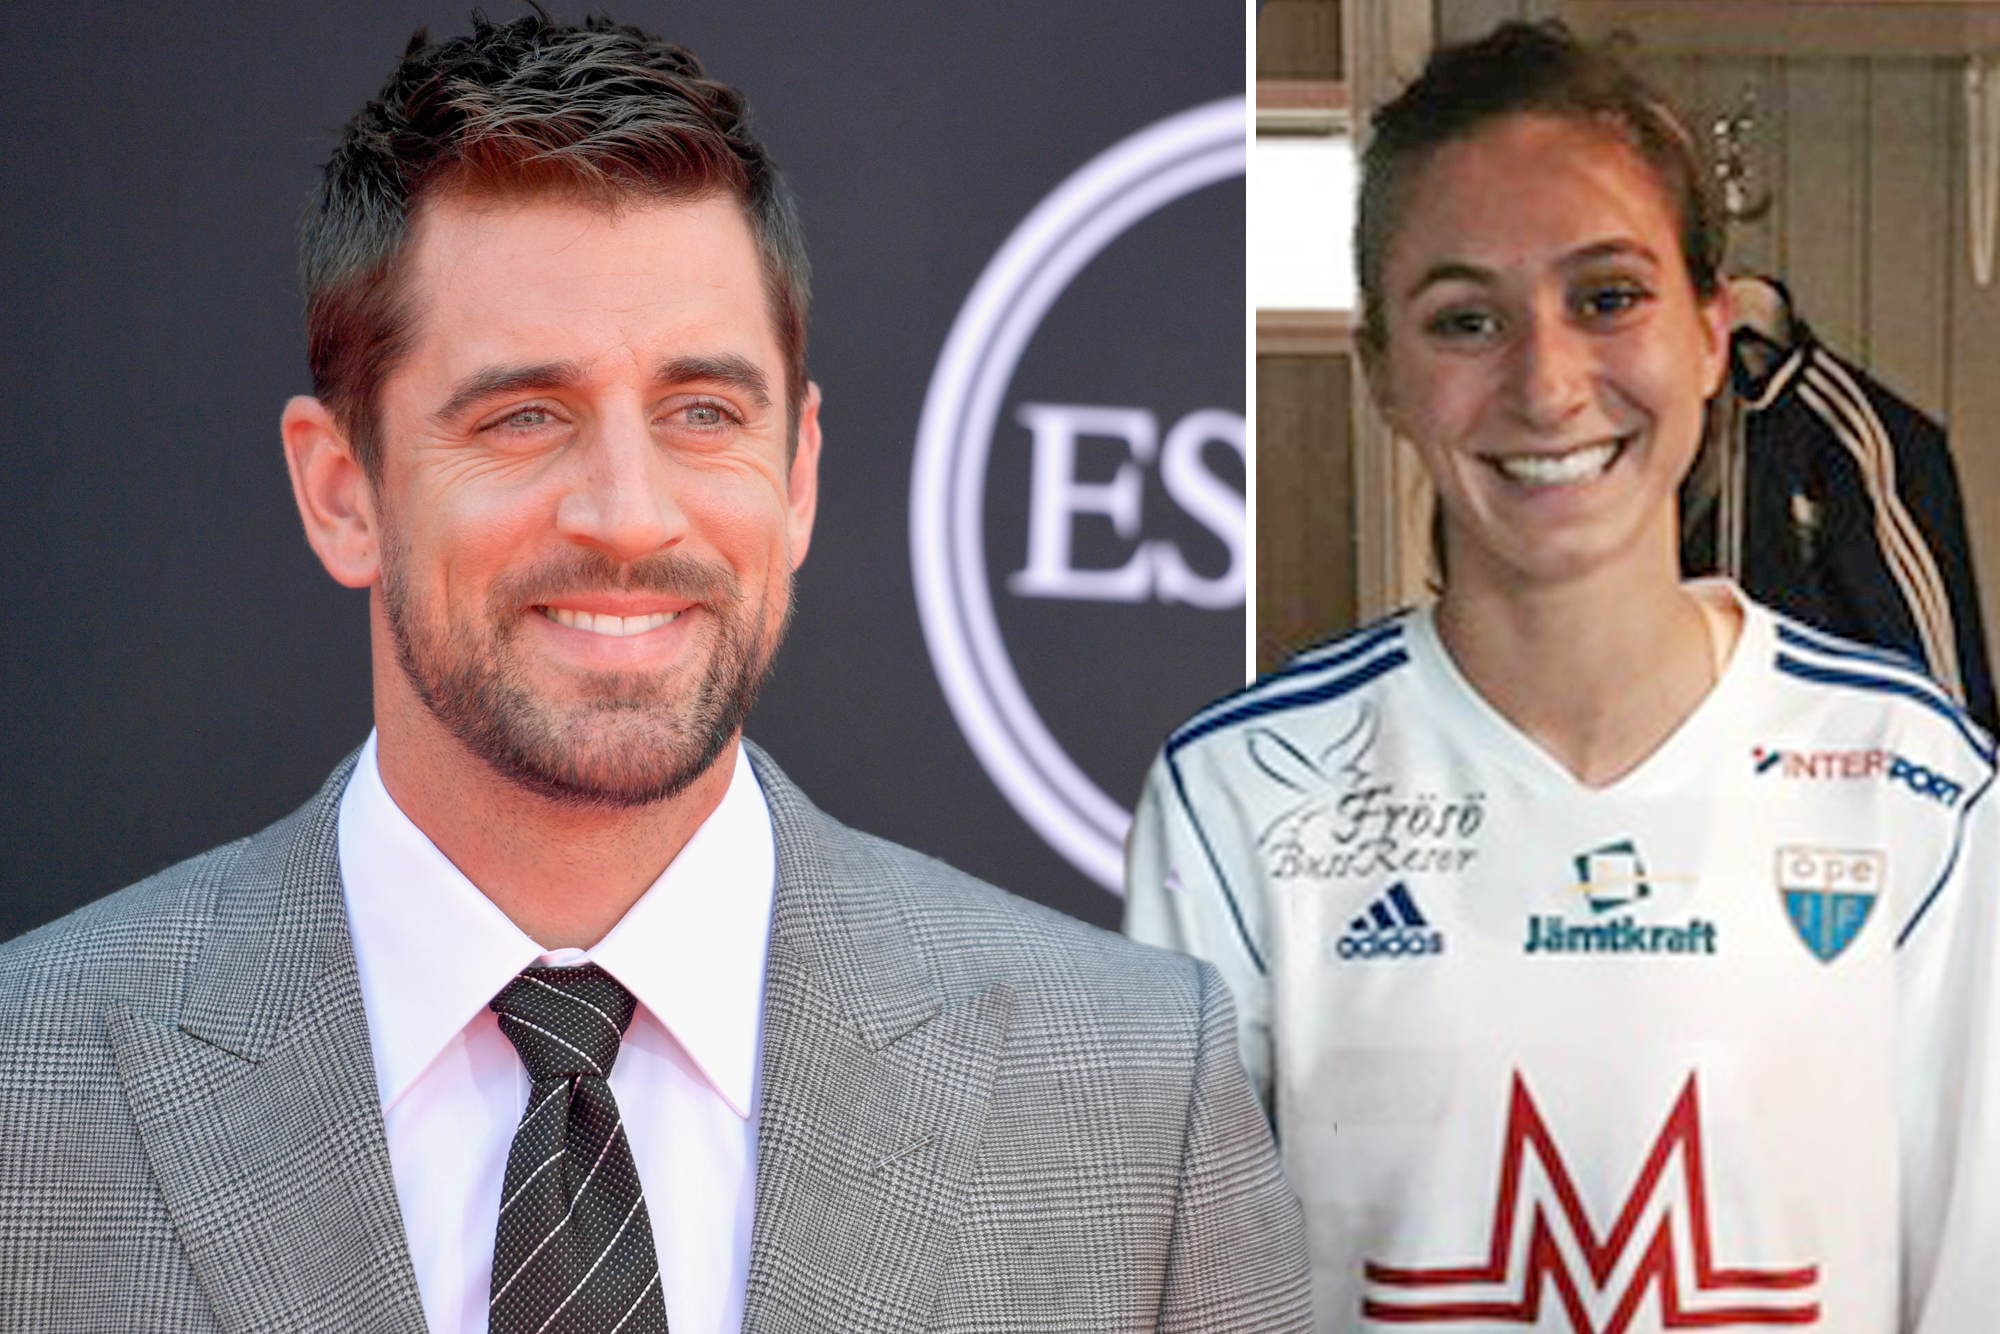 Aaron Rodgers Rebounds From Olivia Munn With Soccer Star Page Six